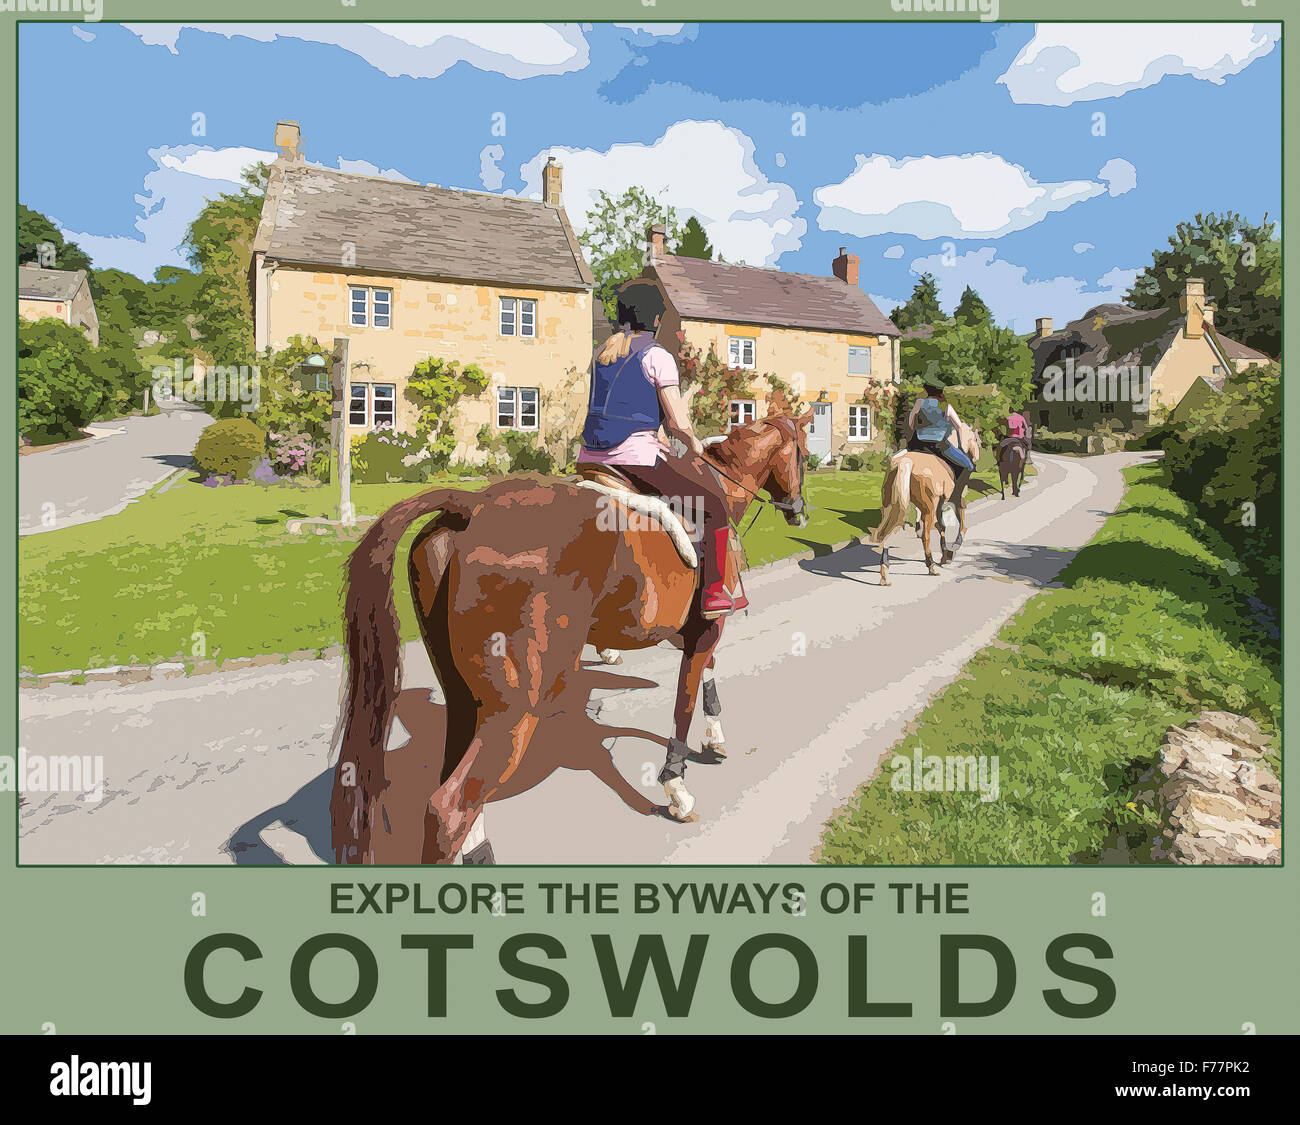 Un style poster illustration à partir d'une photo de cavaliers dans le village de Stanton, Worcestershire, Photo Stock